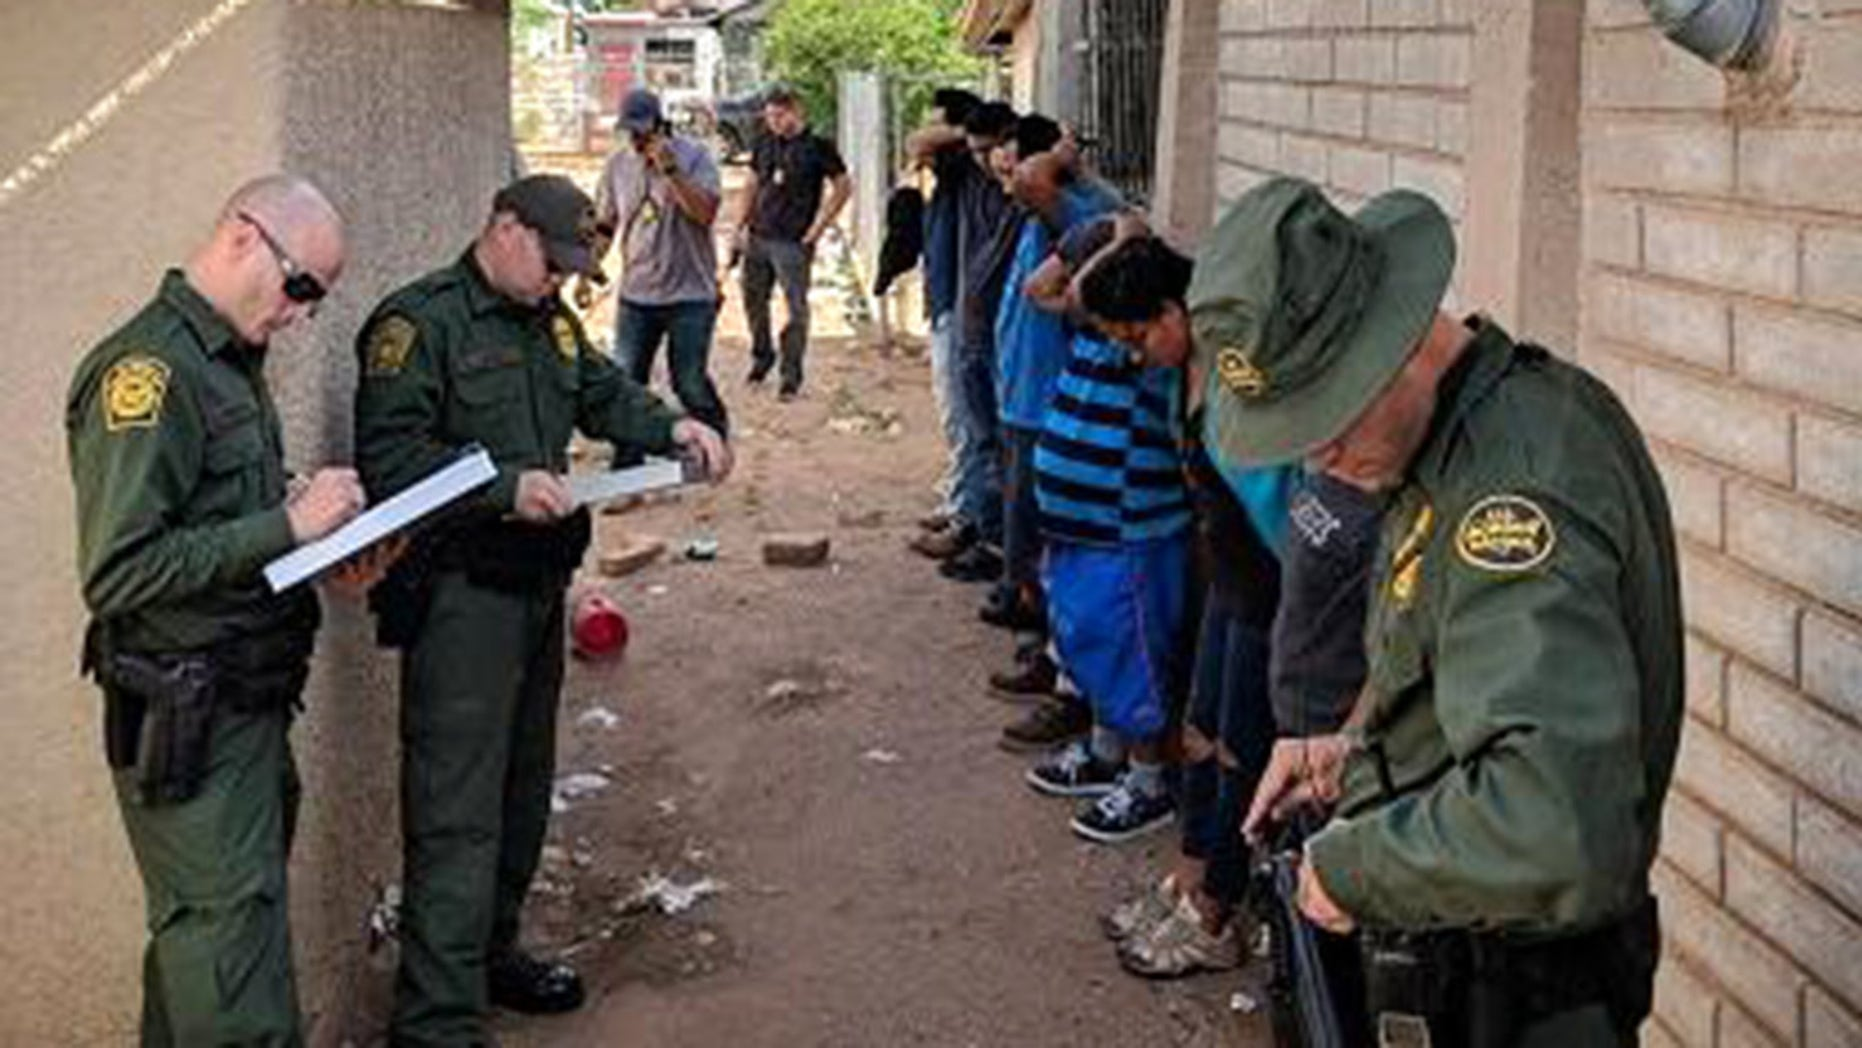 Border patrol agents swooped on the home in Douglas, Arizona, after observing several vehicles dropping people off through the day on Tuesday.